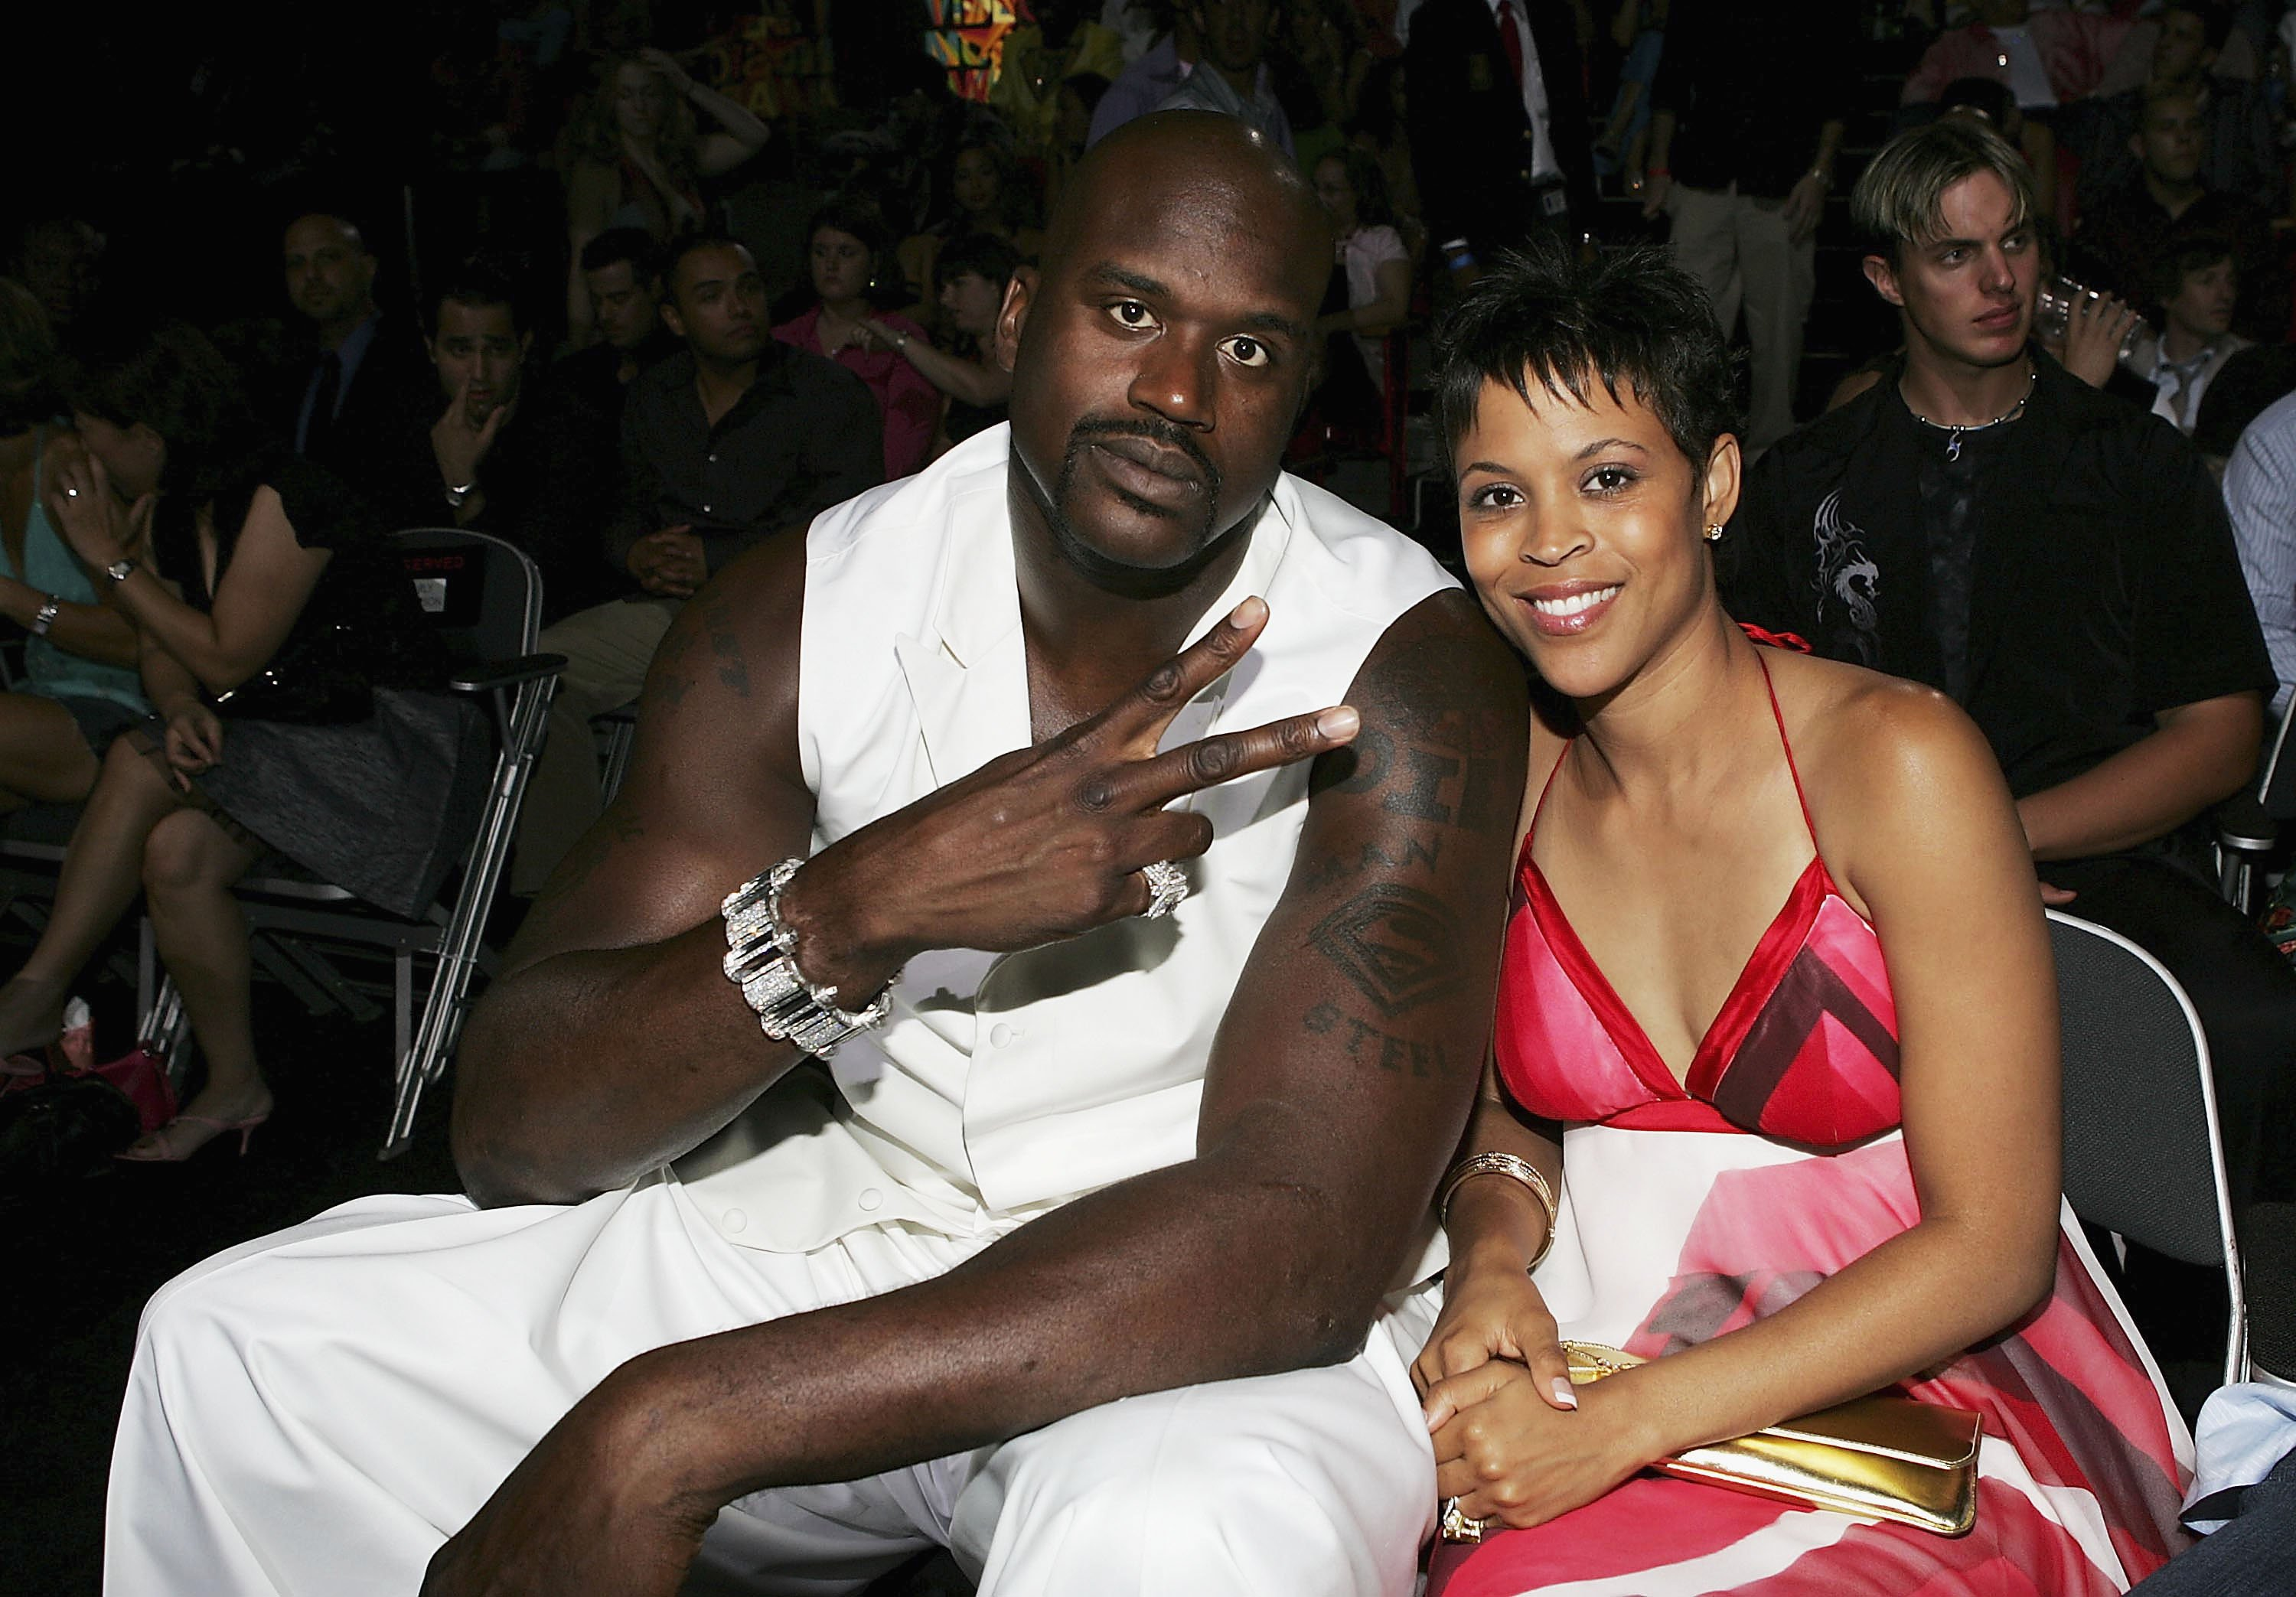 Shaquille O'Neal and Shaunie O'Neal at the 2004 MTV Video Music Awards. | Photo: GettyImages